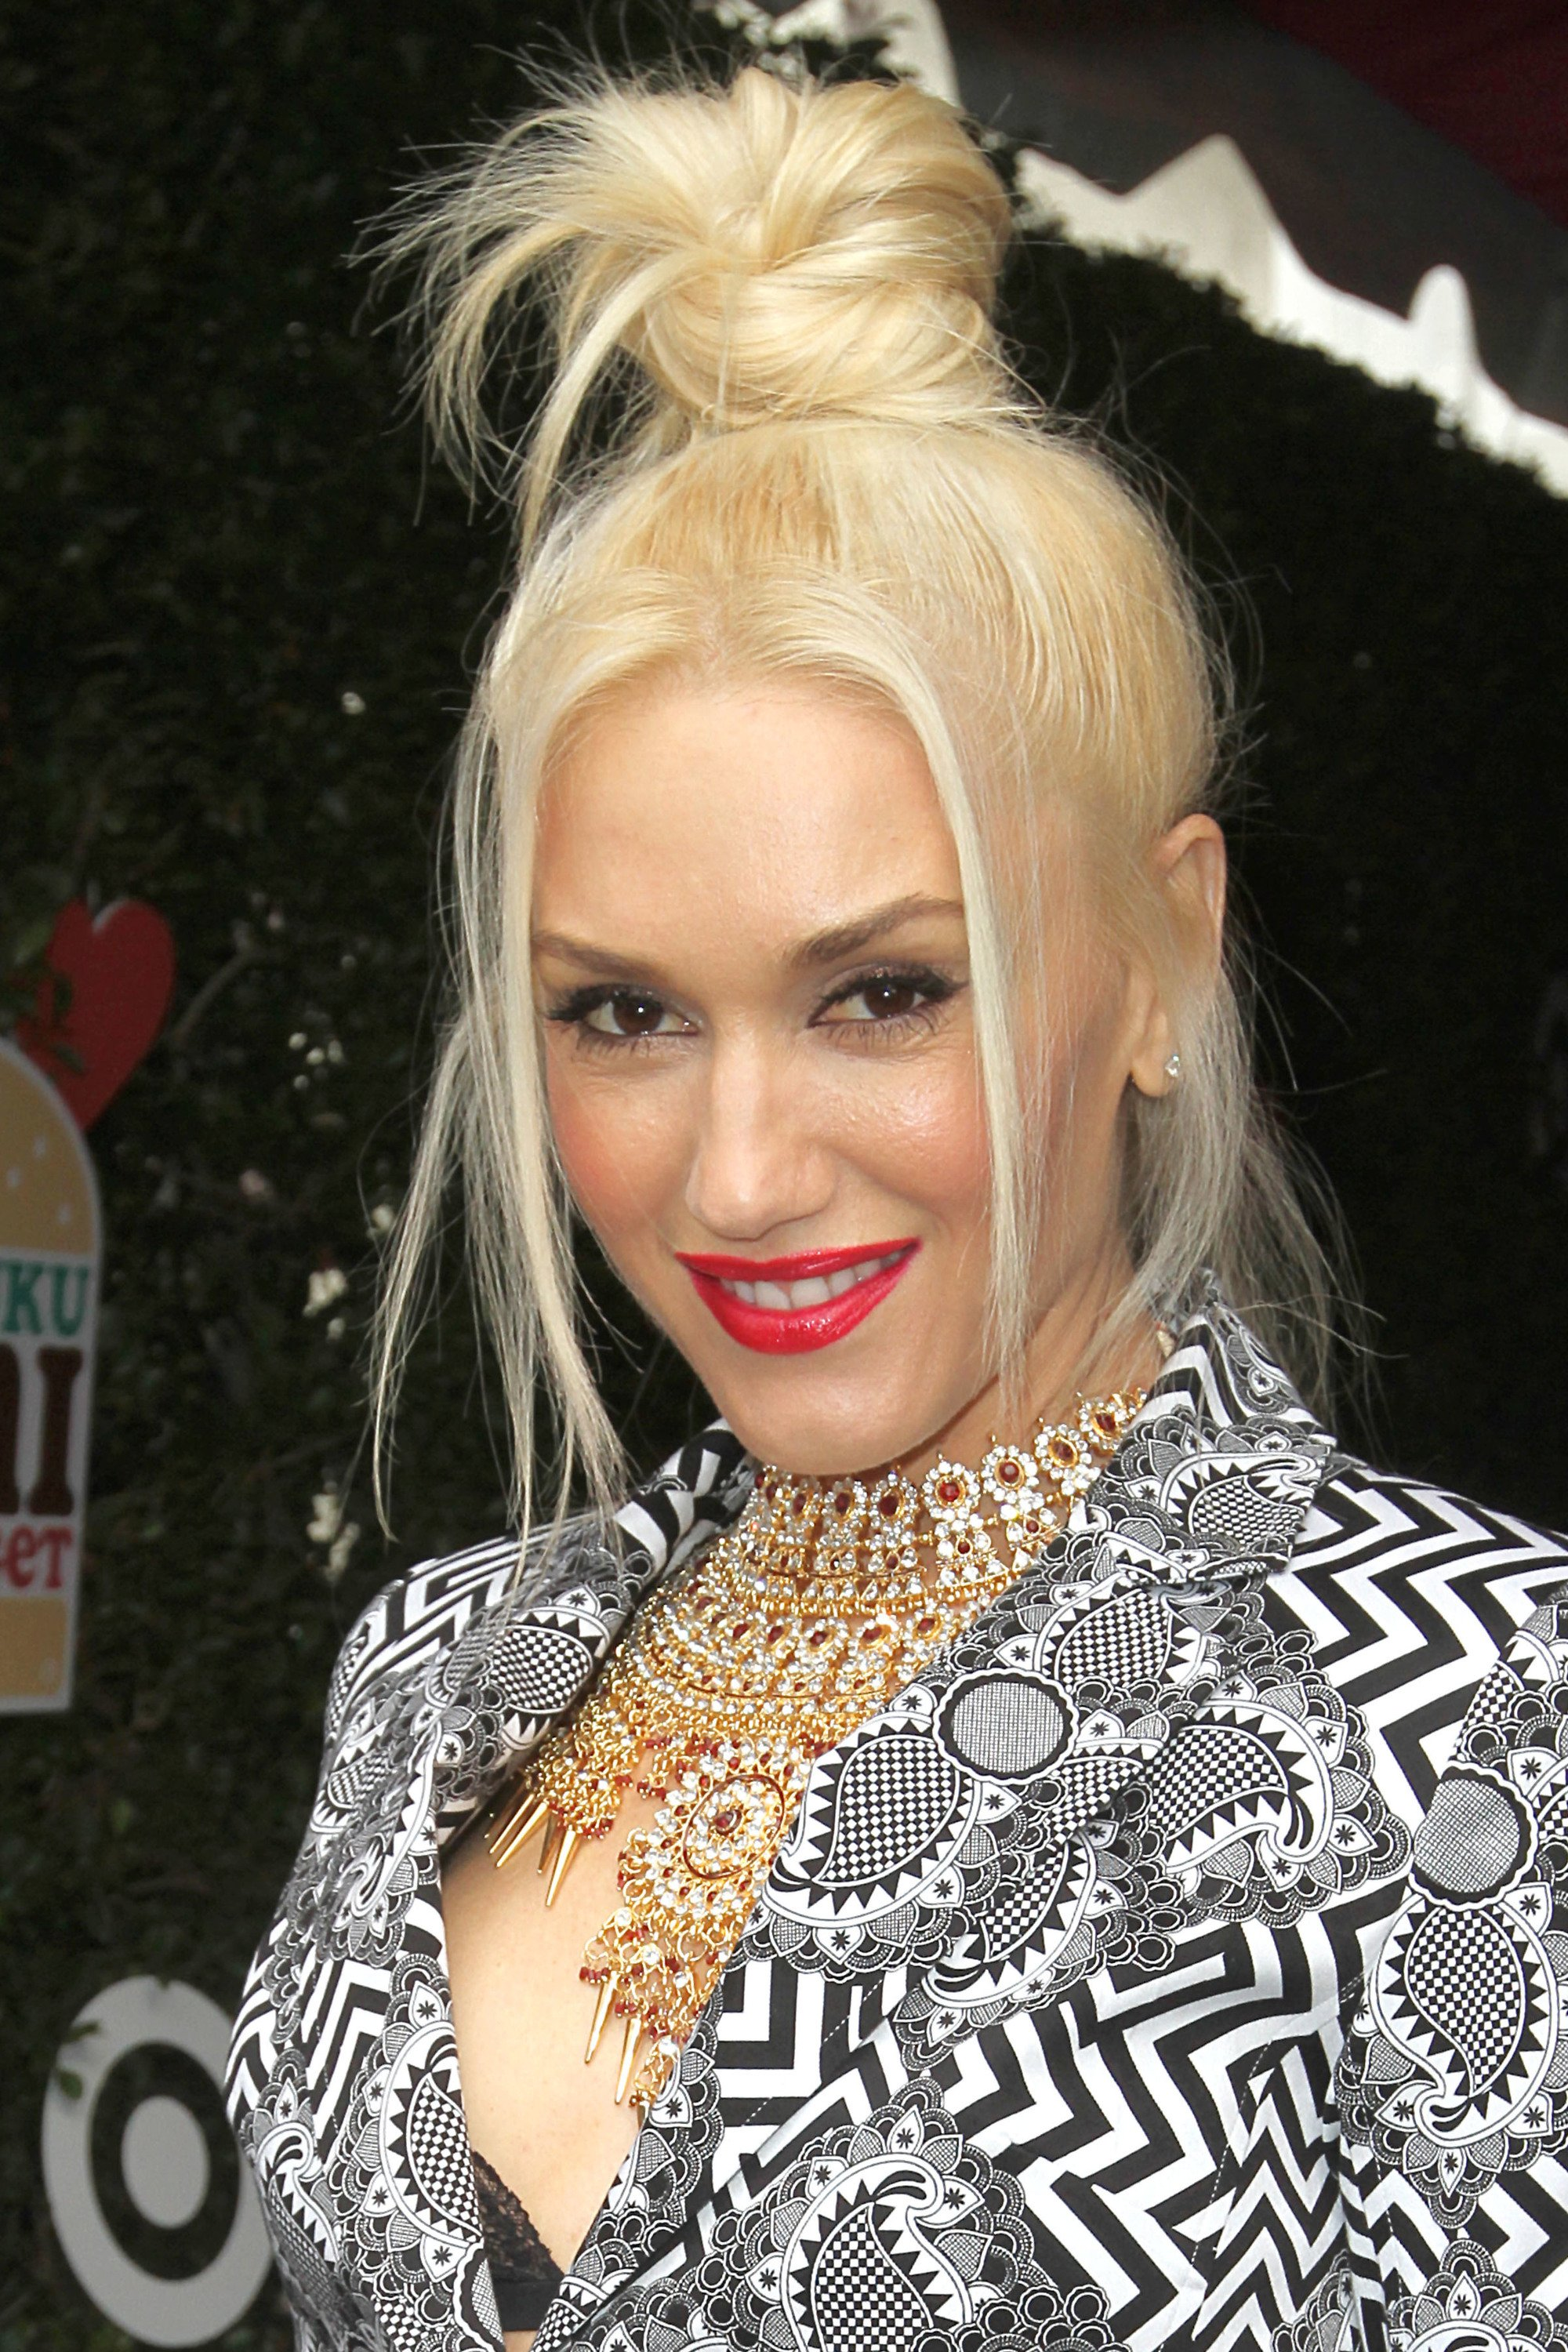 Gwen Stefani platinum blonde hair in ninja top knot bun